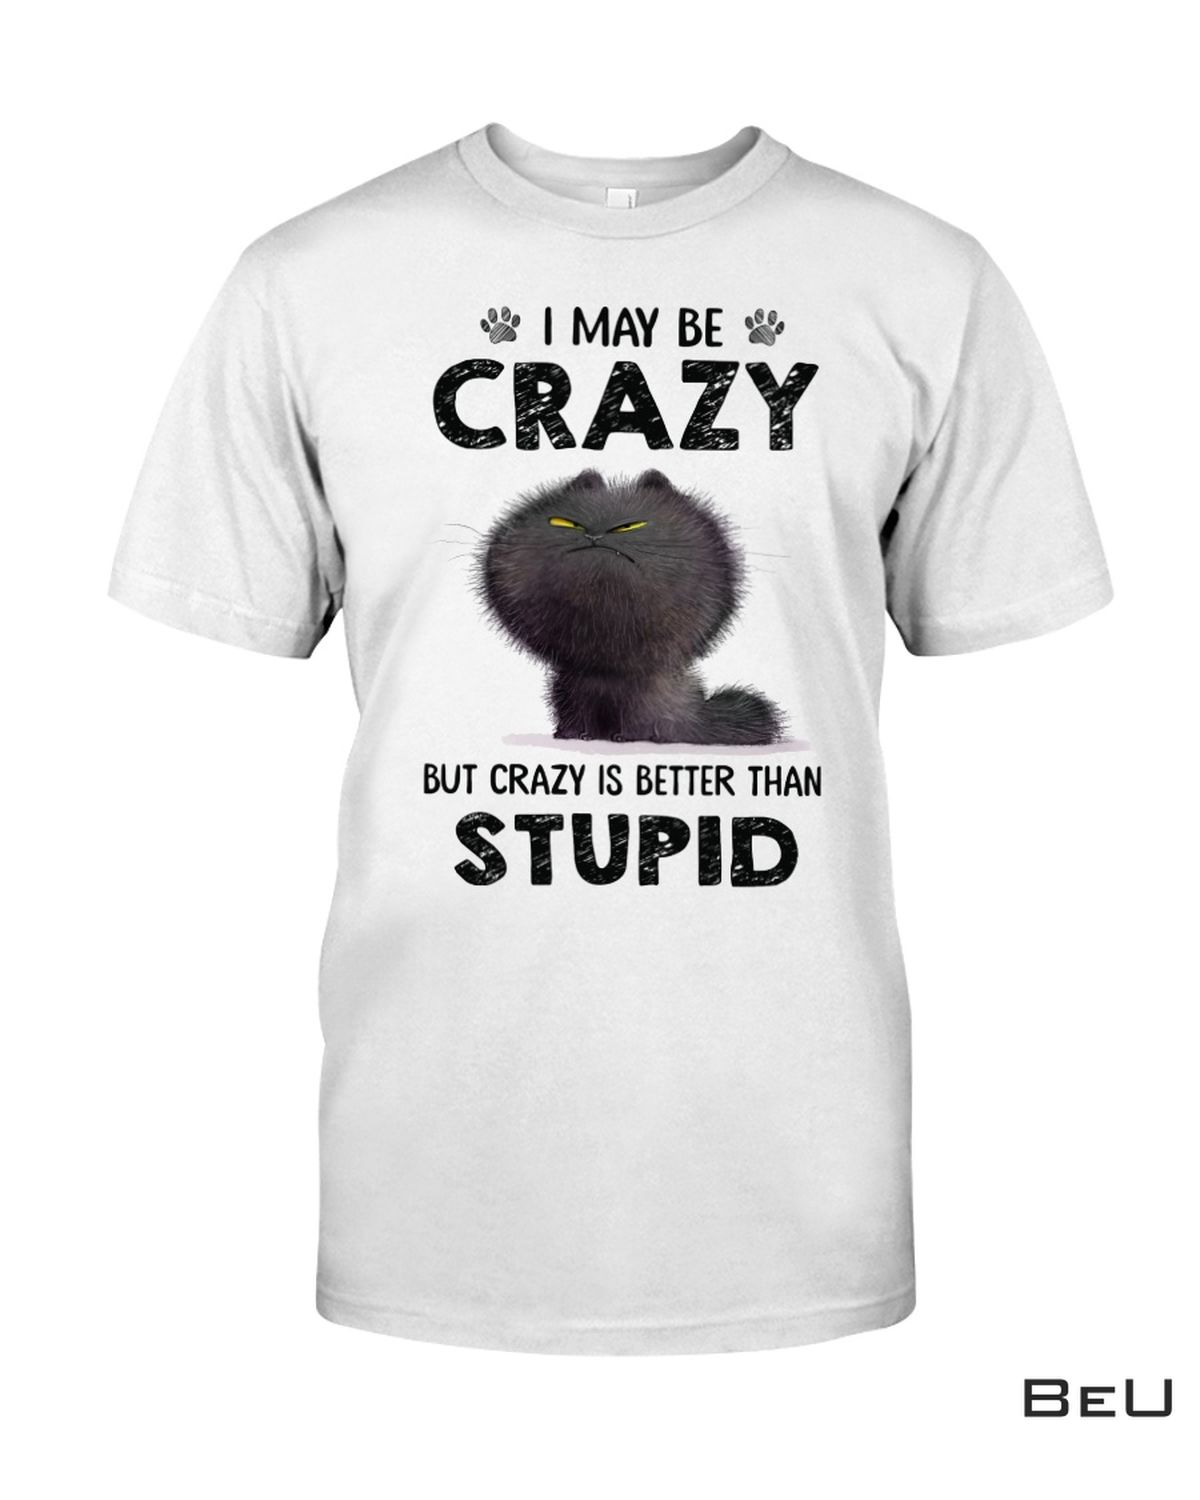 I May Be Crazy But Crazy Is Better Than Stupid Funny Cat Shirt, hoodie, tank top